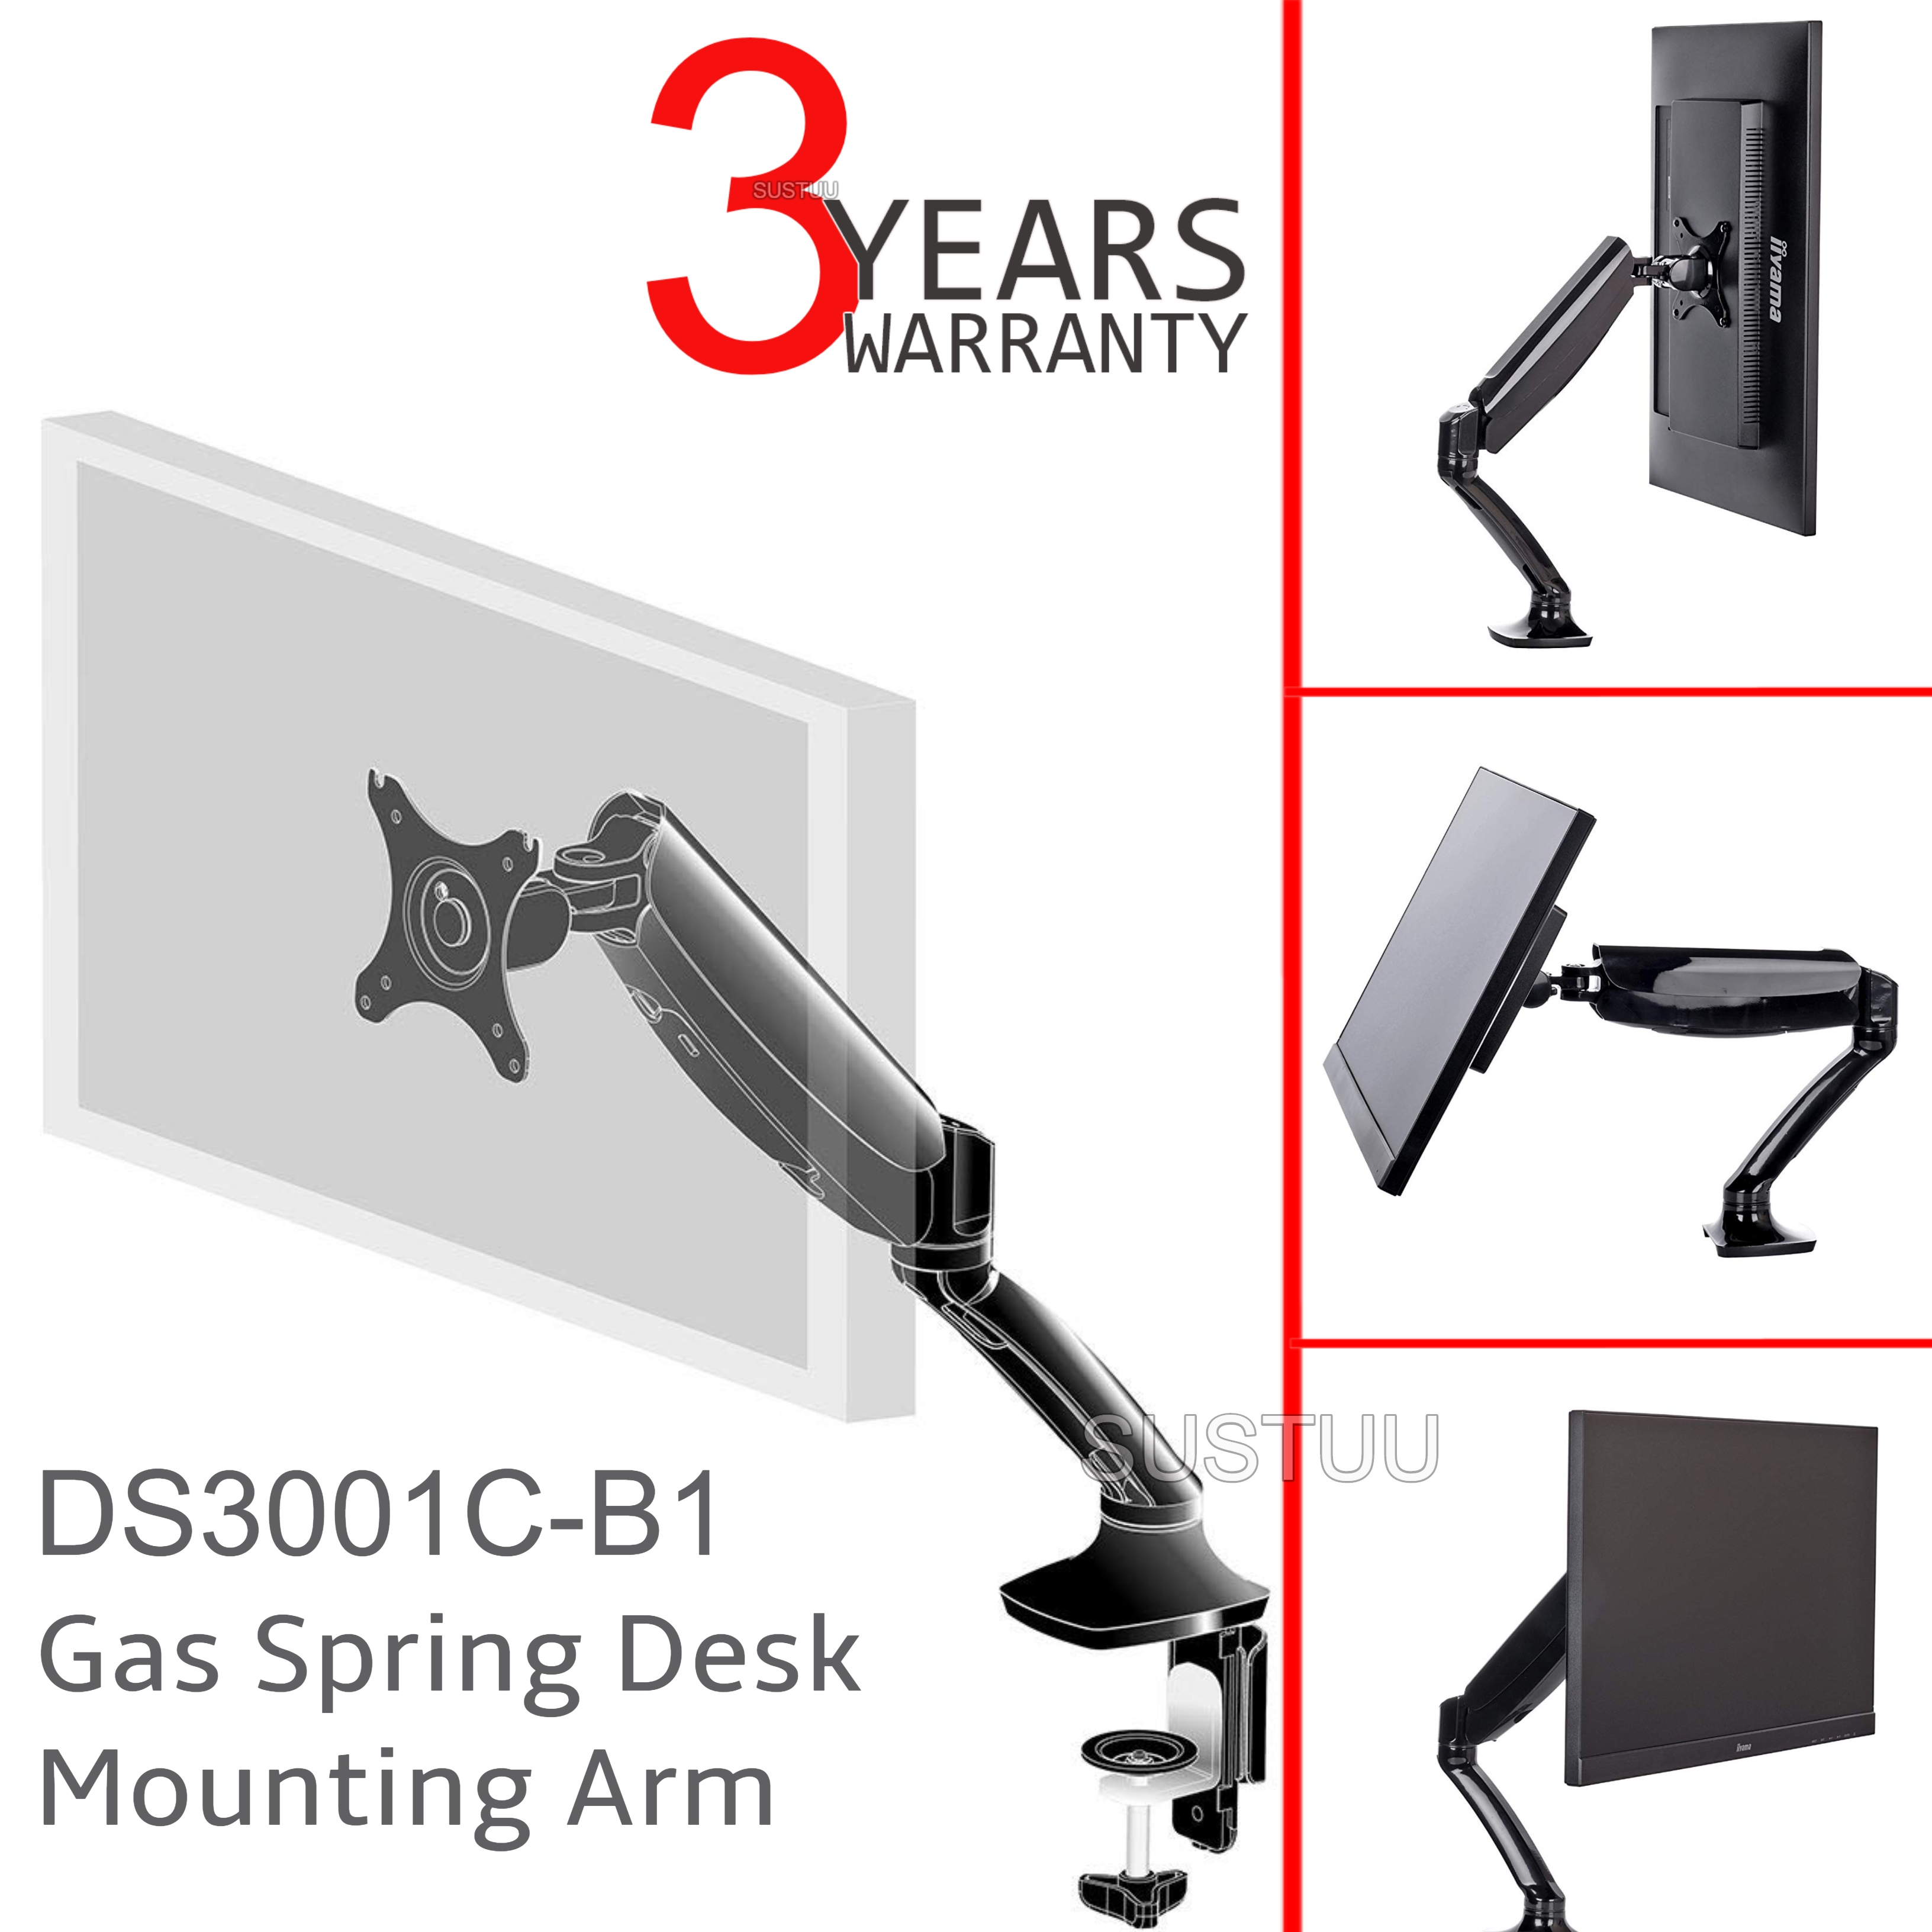 iiyama DS3001C-B1 Gas Spring Mounting Arm|Desk Clamp|Stable Screen Stand|Black|